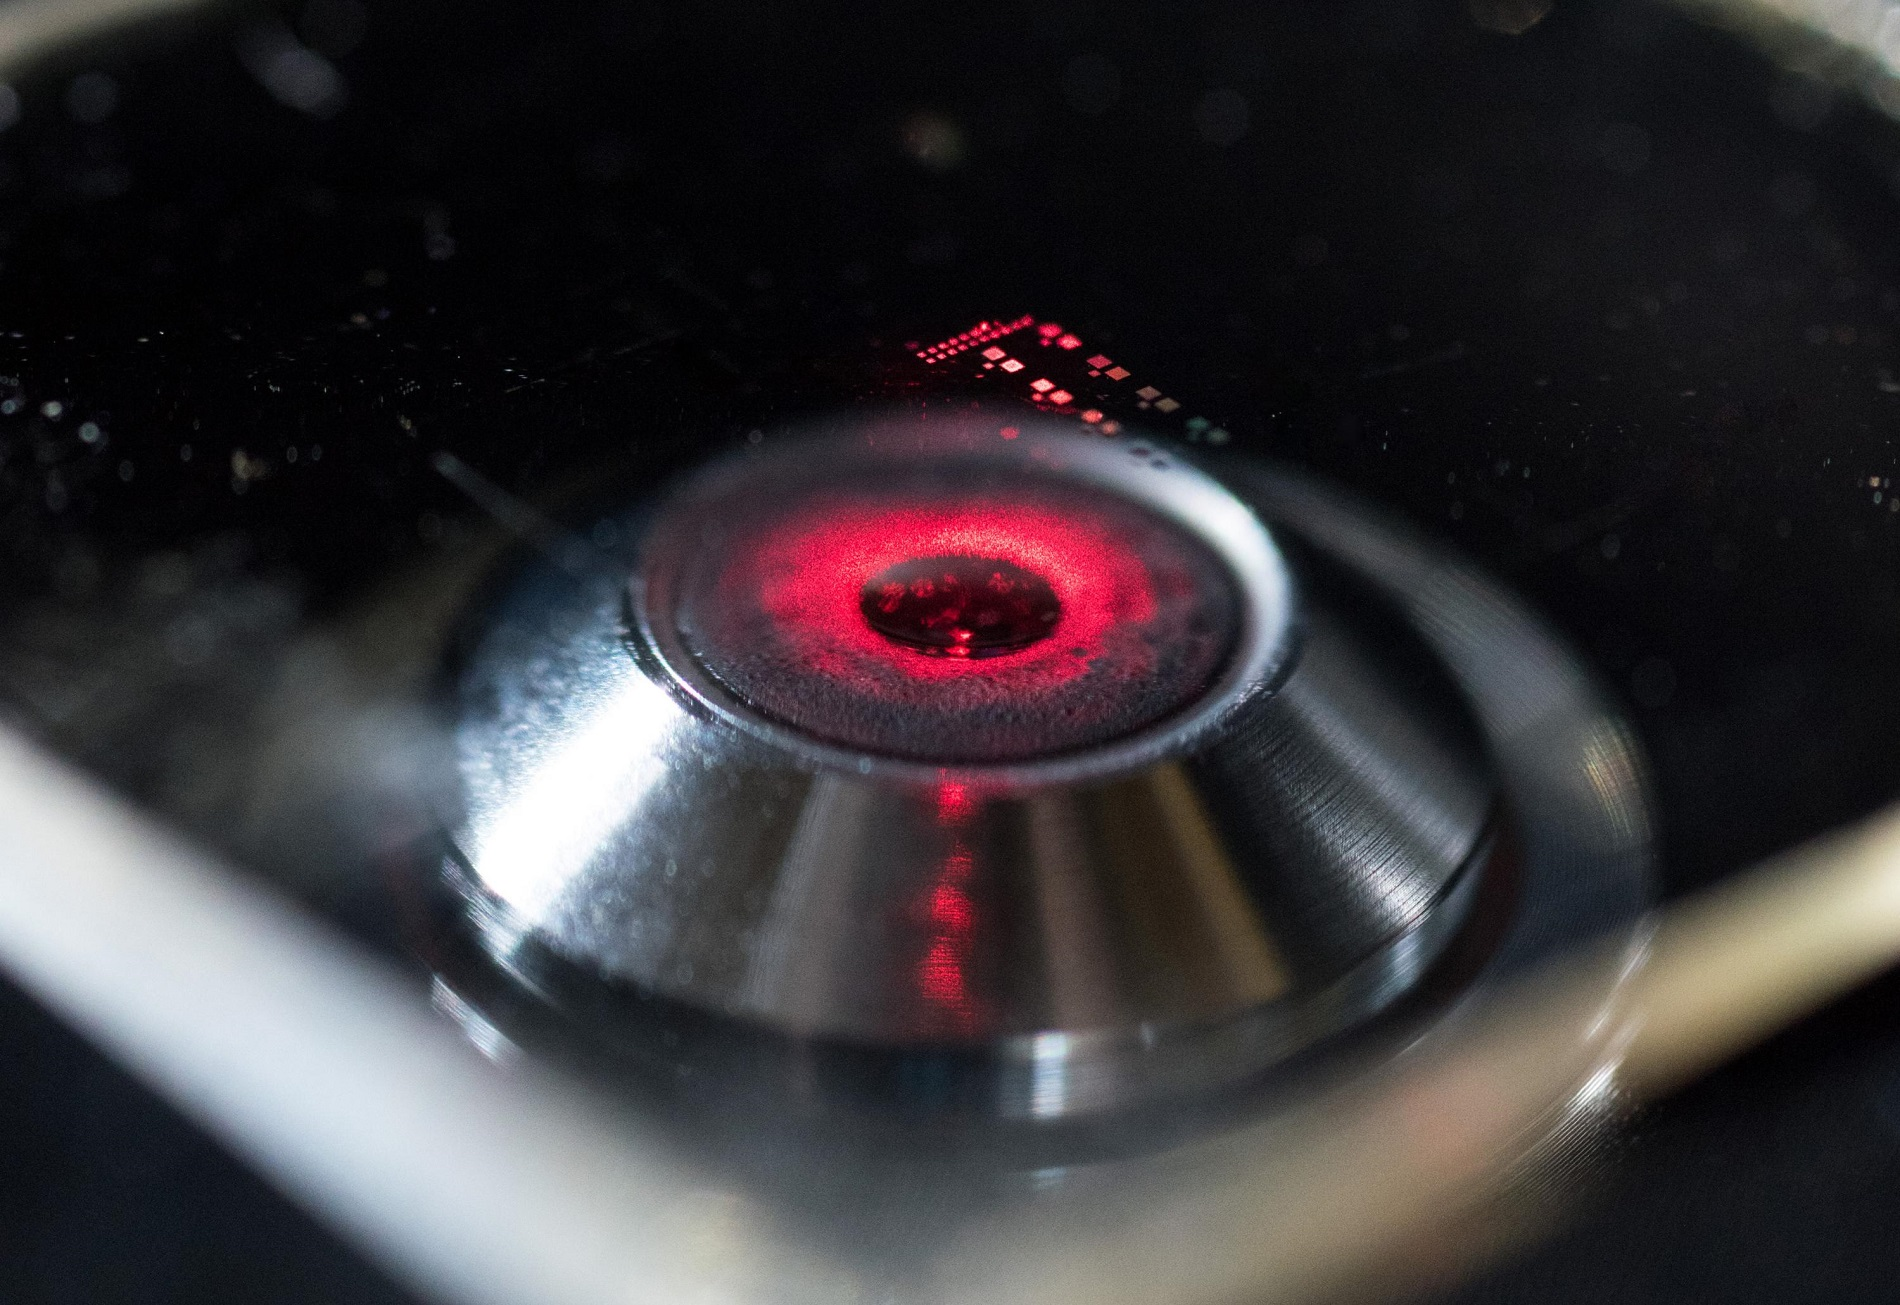 Laser light shows the nanopatterned structure of a chiral metamaterial developed by researchers in the School of Electrical and Computer Engineering at the Georgia Institute of Technology